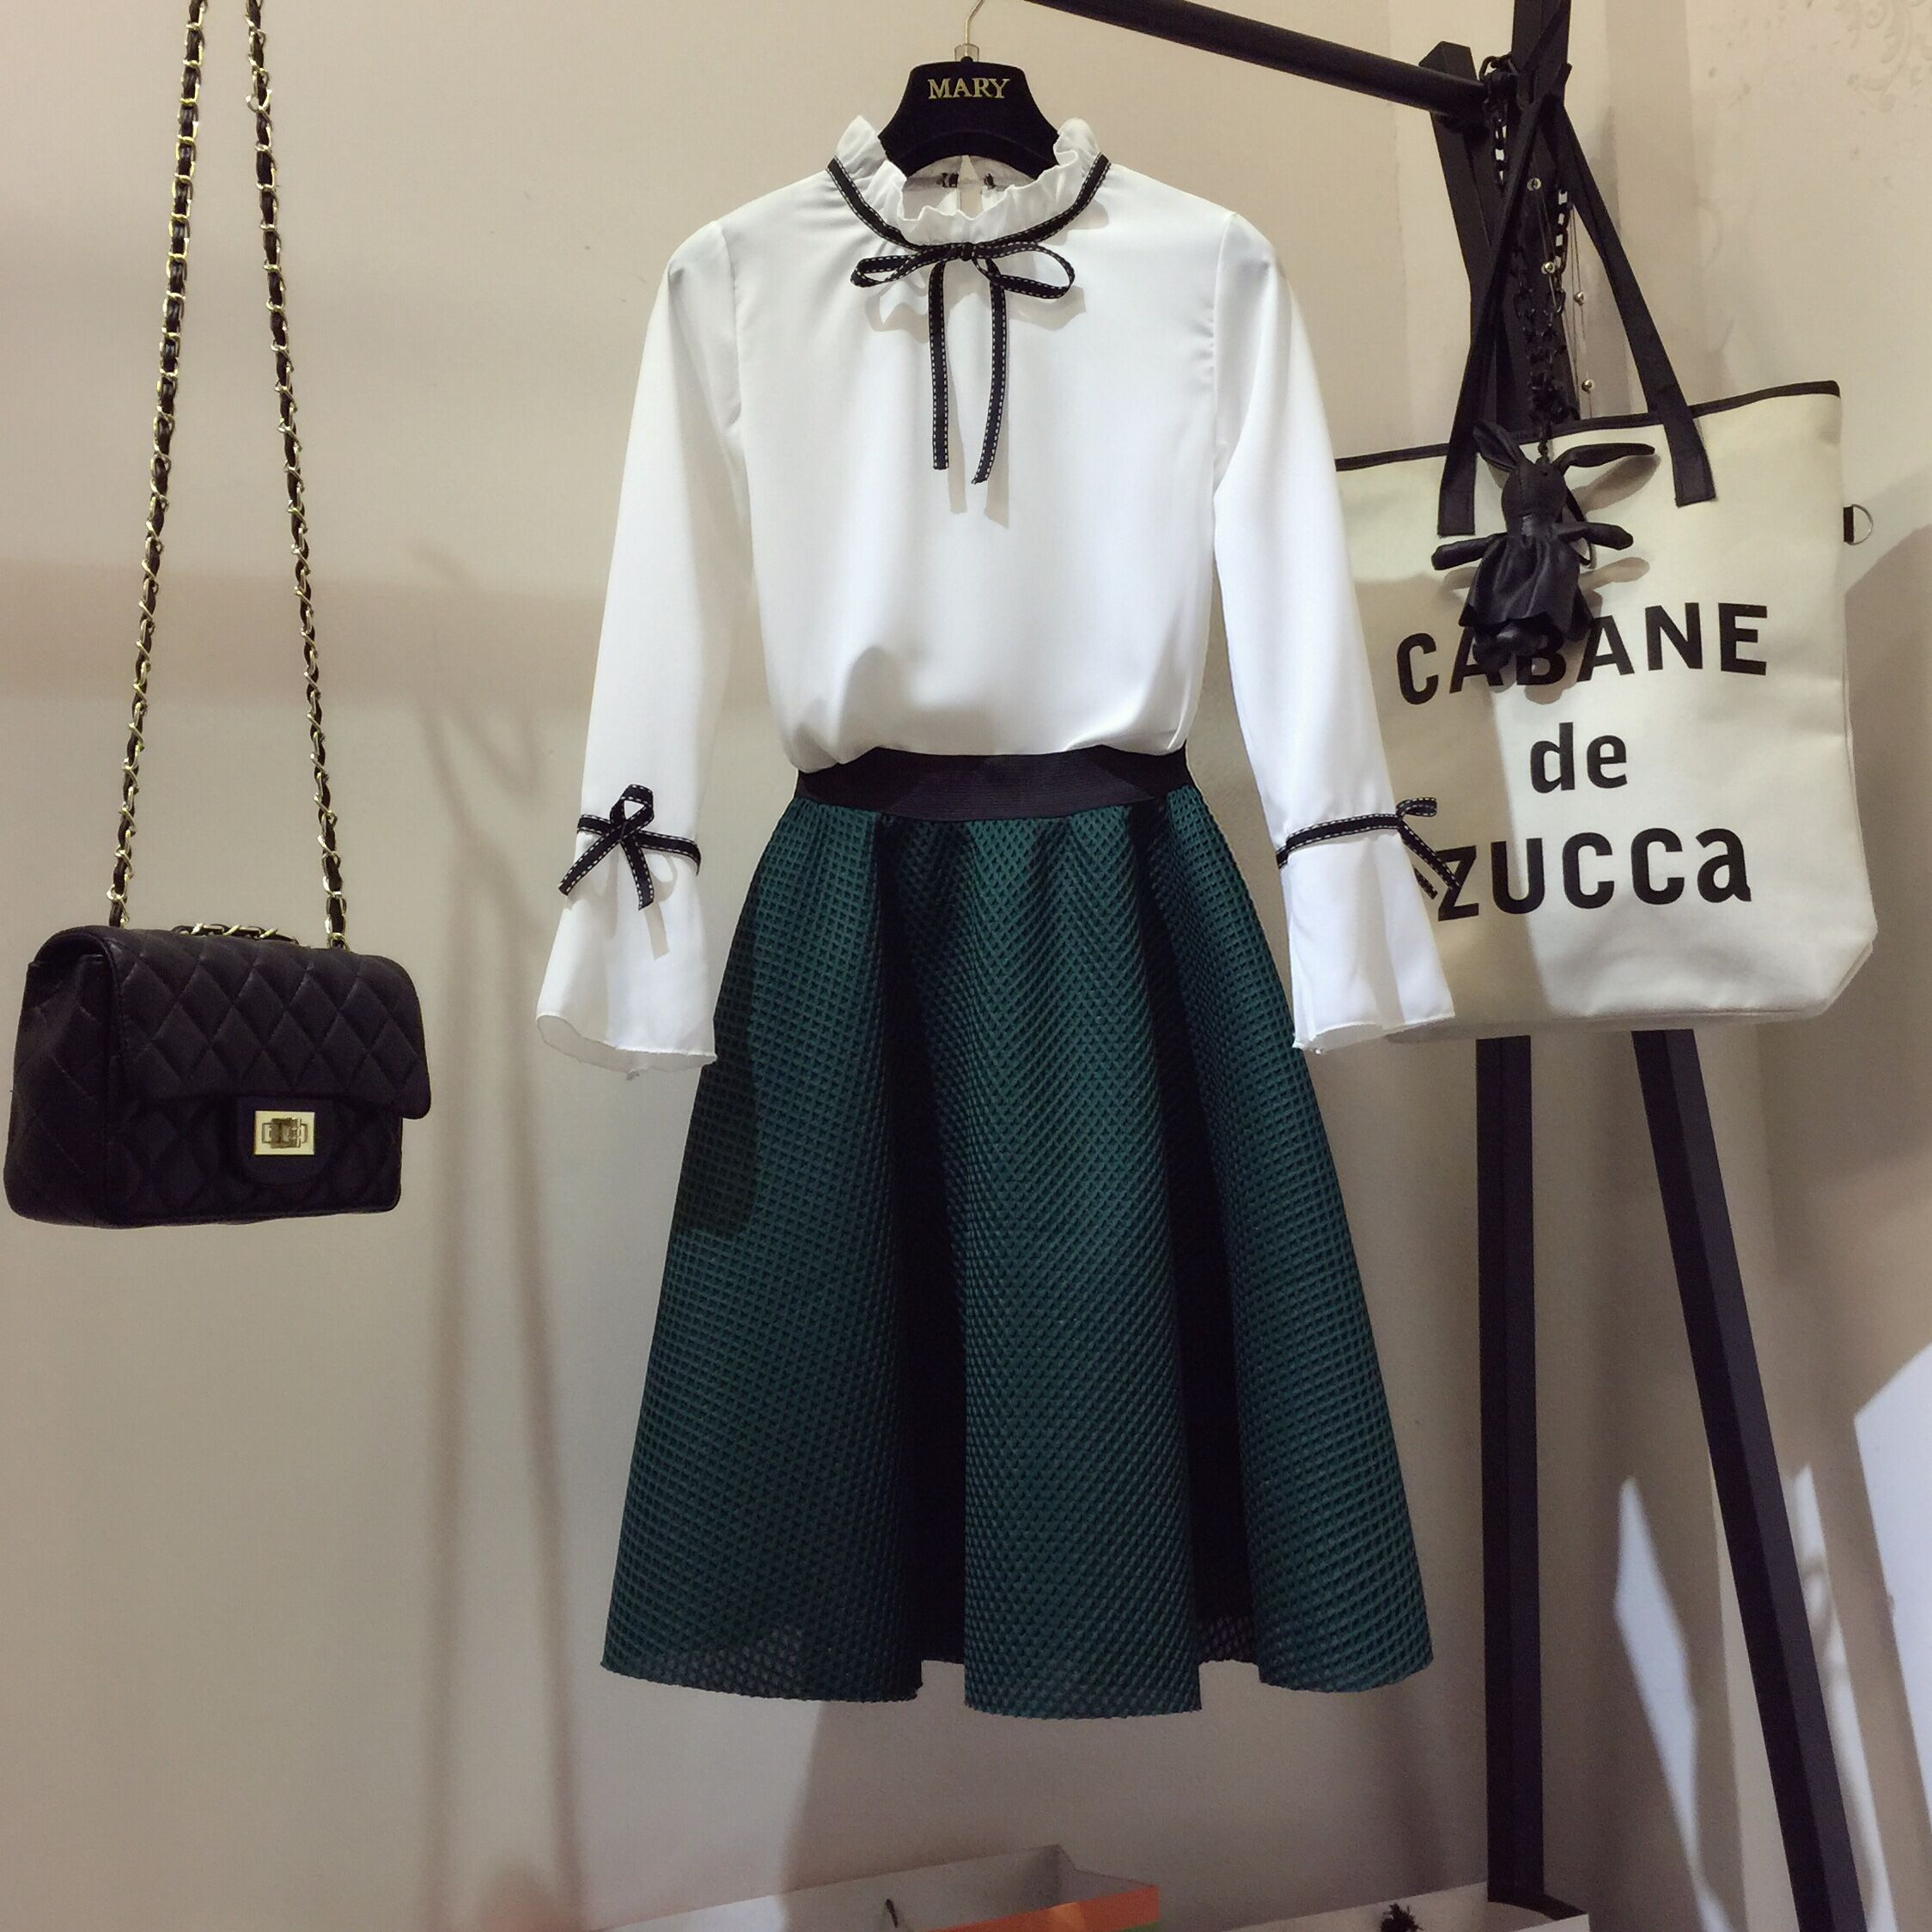 Compare Prices on Blouse Long Skirt- Online Shopping/Buy Low Price ...